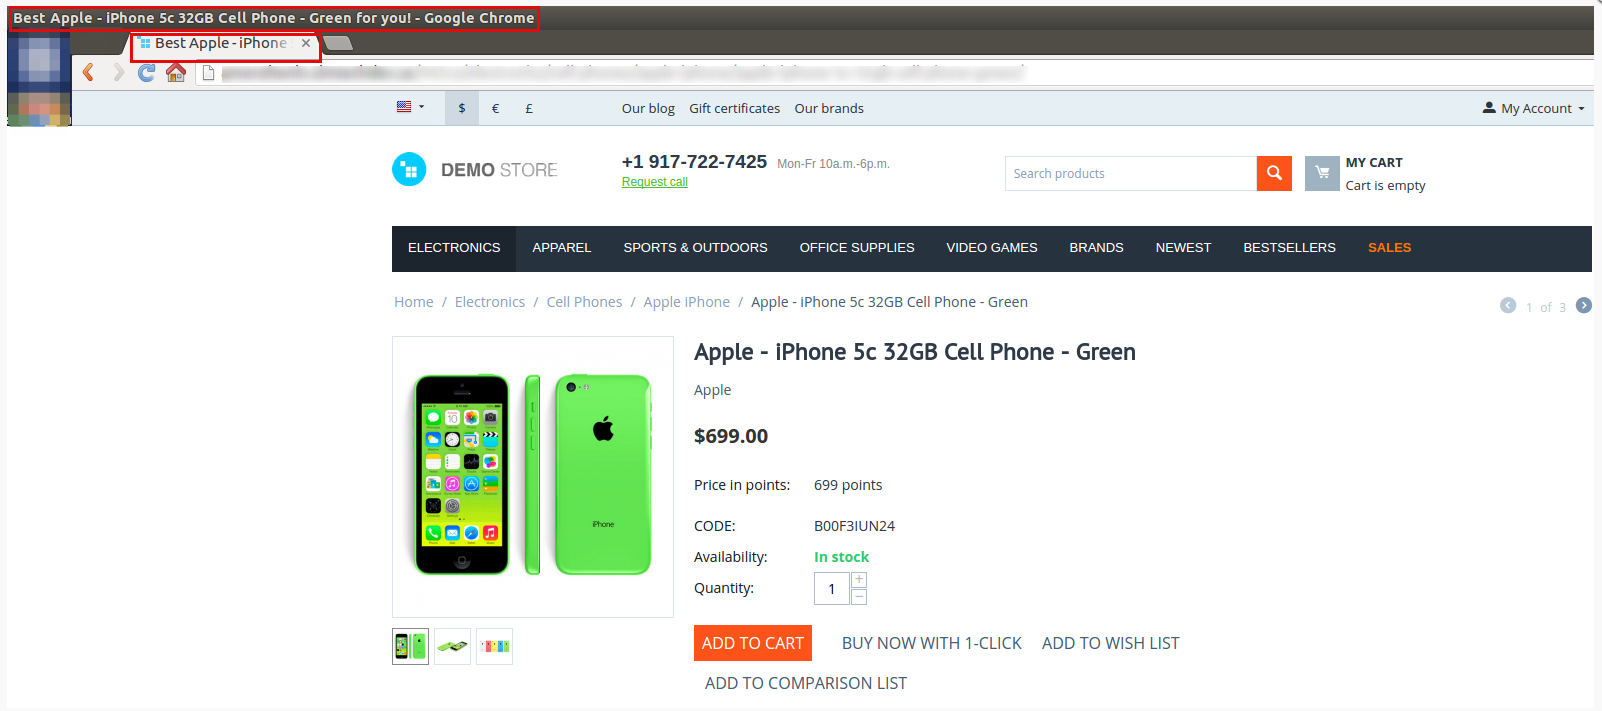 product_page.png?1485771875758